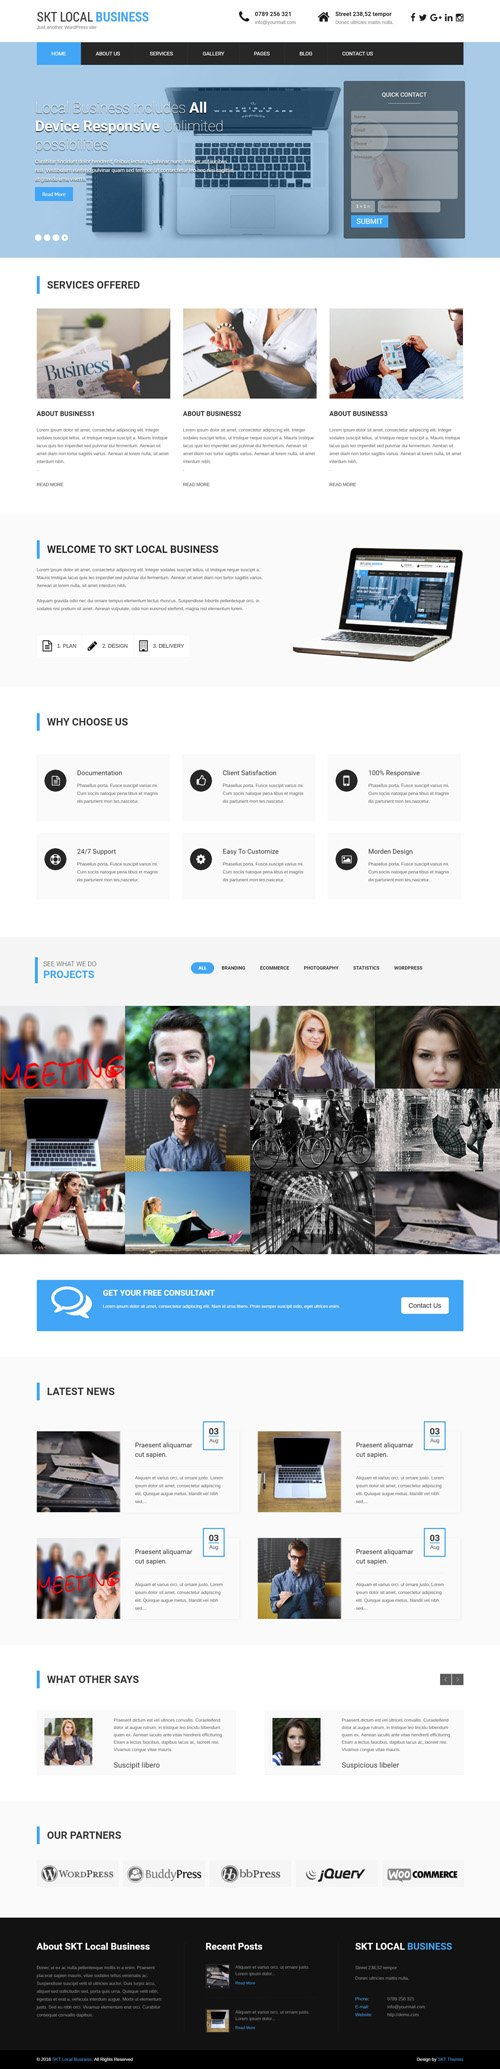 SKT Themes - Local Business Pro v1.0 - Responsive WordPress Theme